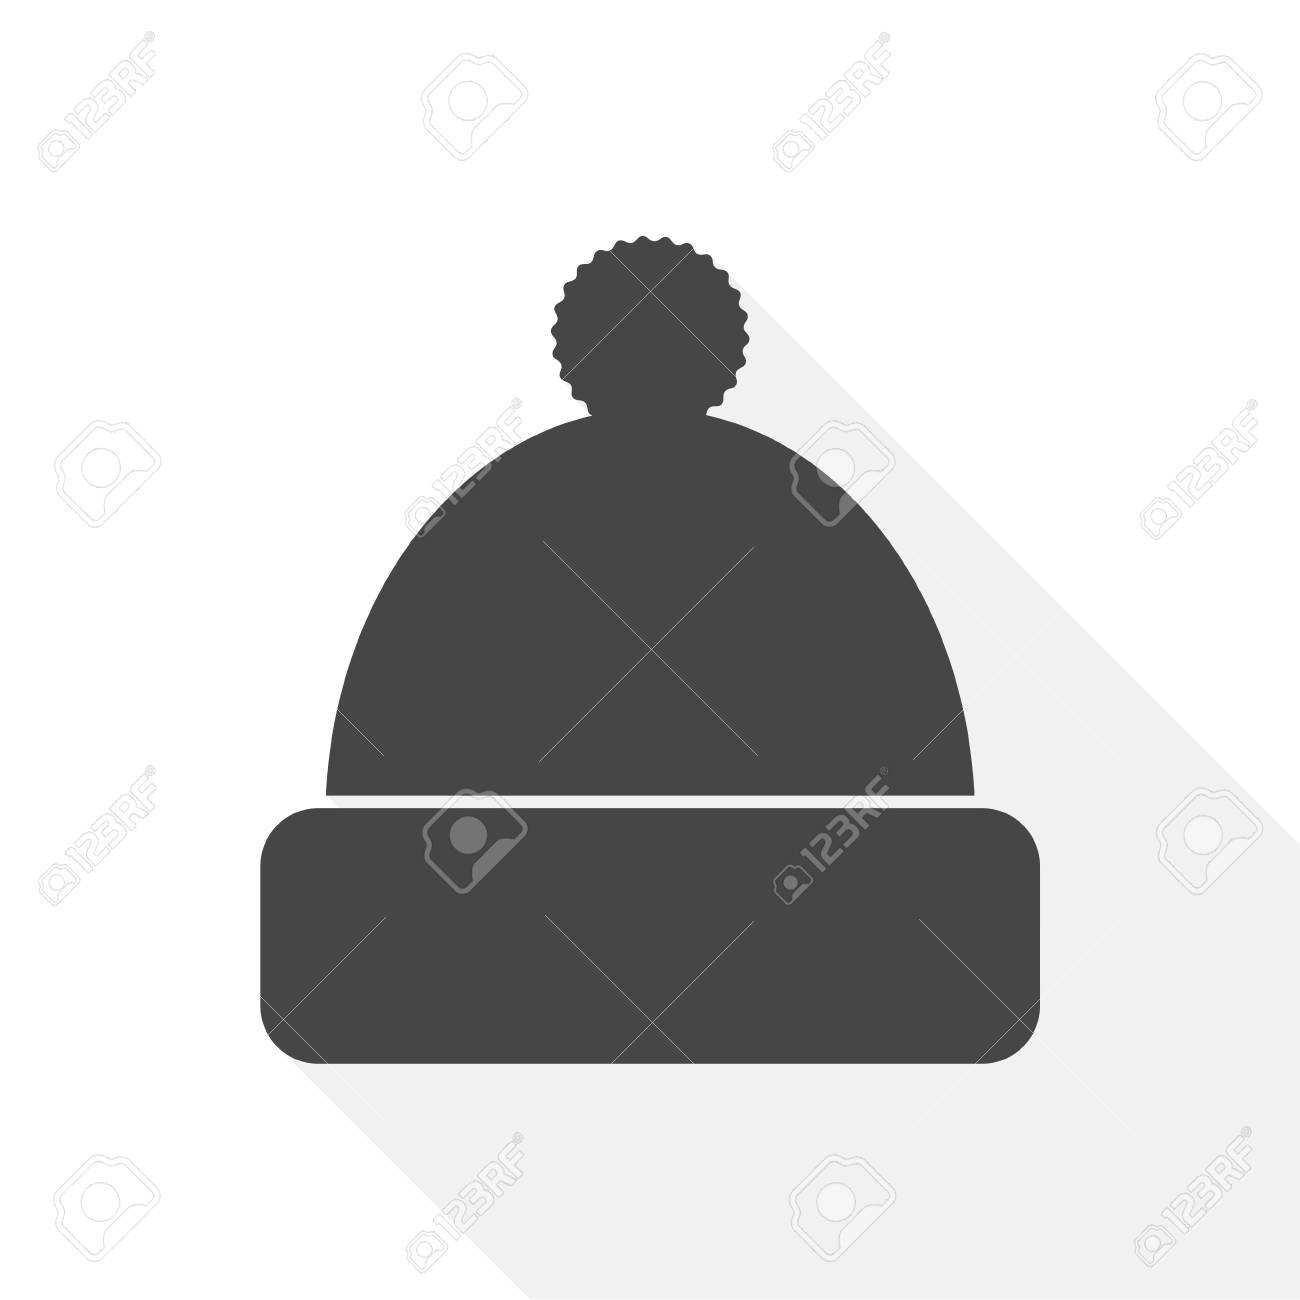 d9a9fd07bce Winter Snowboard Cap Icon - Illustration Royalty Free Cliparts ...